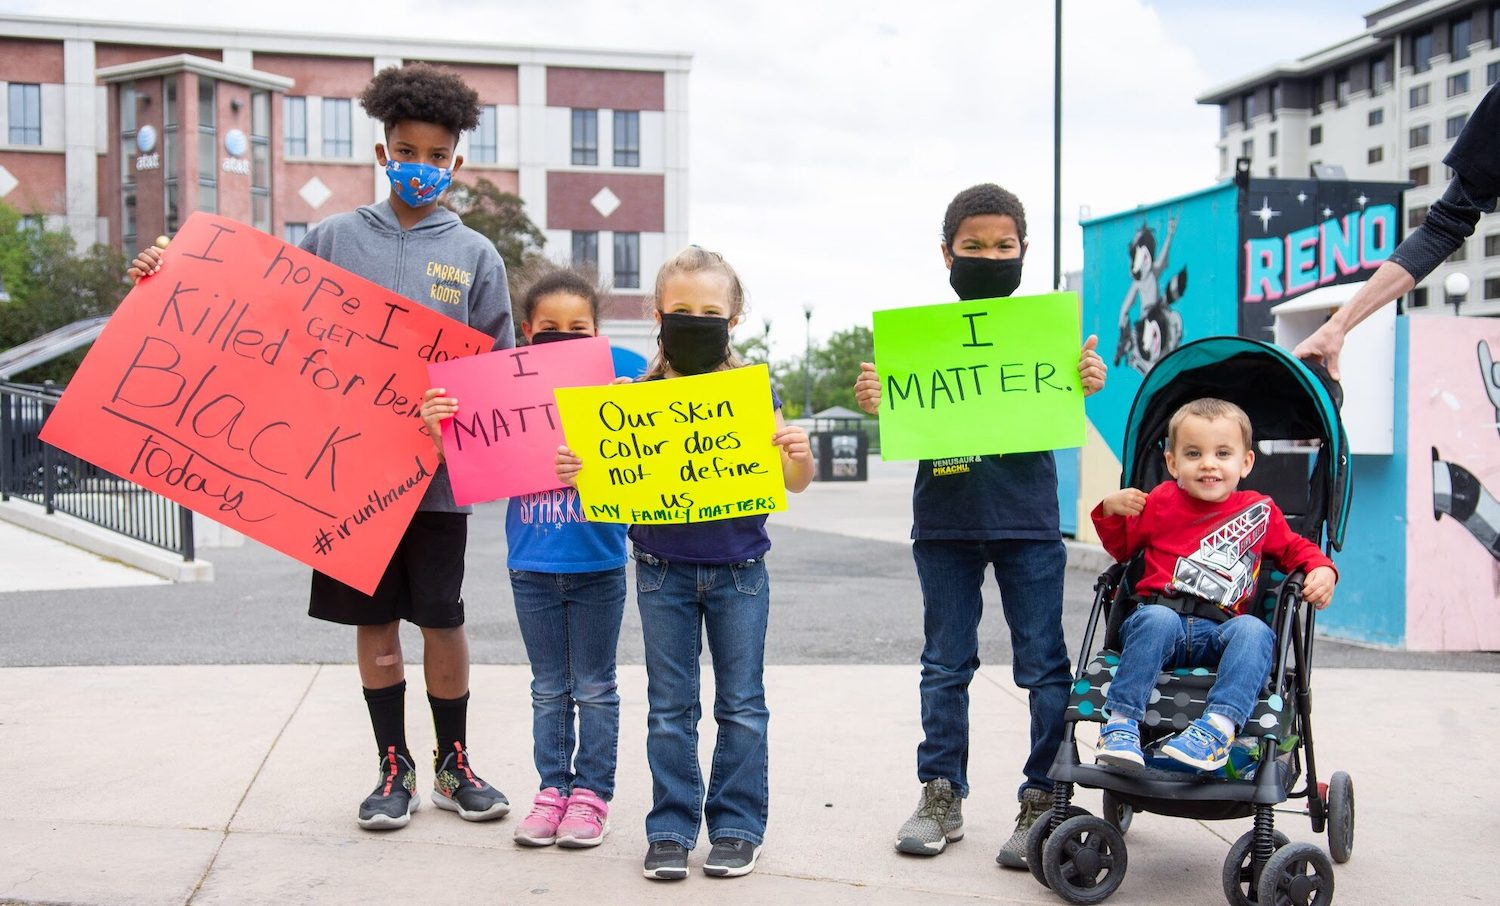 Kids in Reno hold up signs to protest police brutality